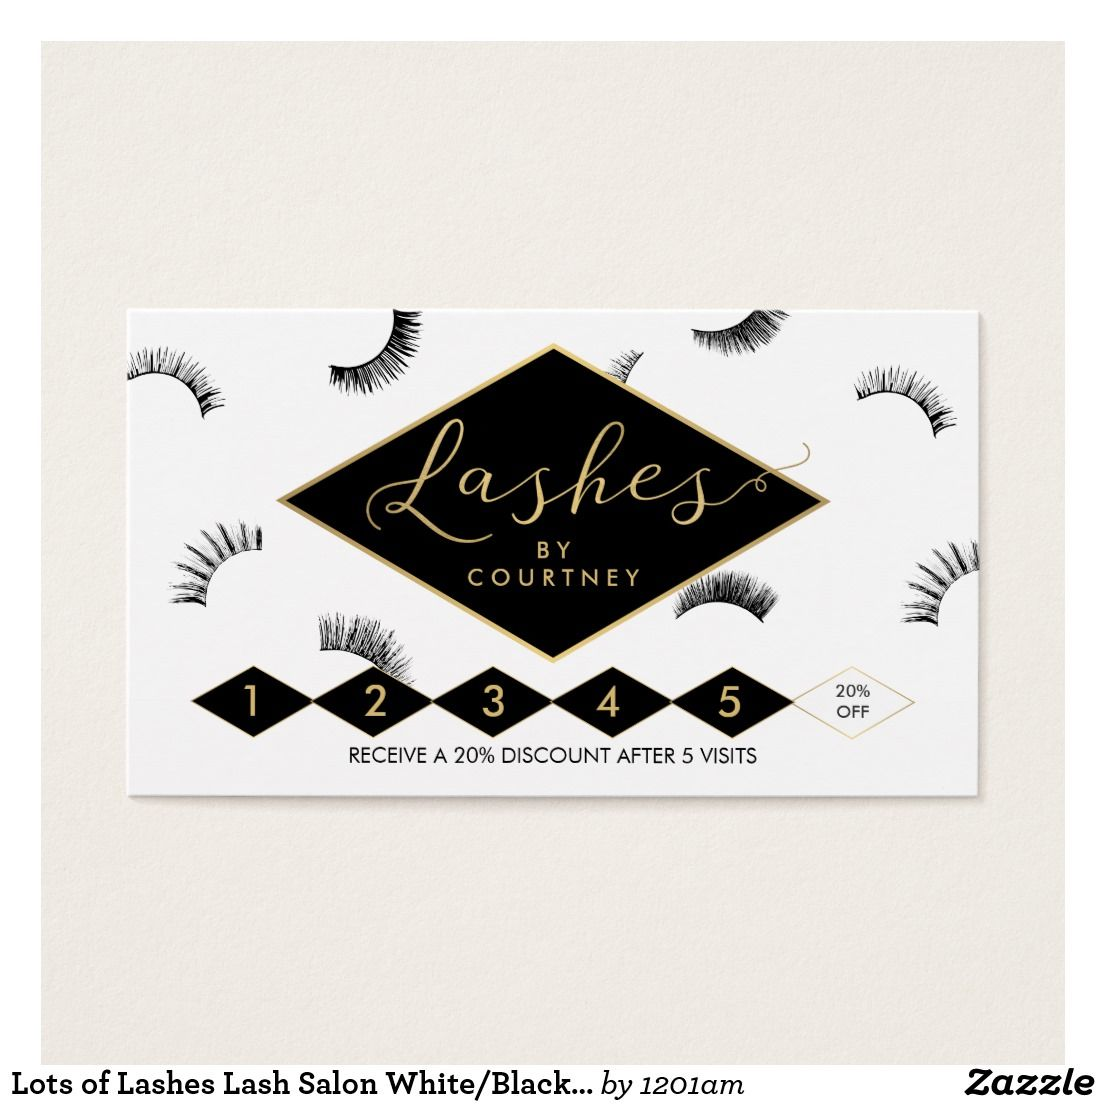 Lots of Lashes Lash Salon White/Black/Gold Loyalty Business Card ...